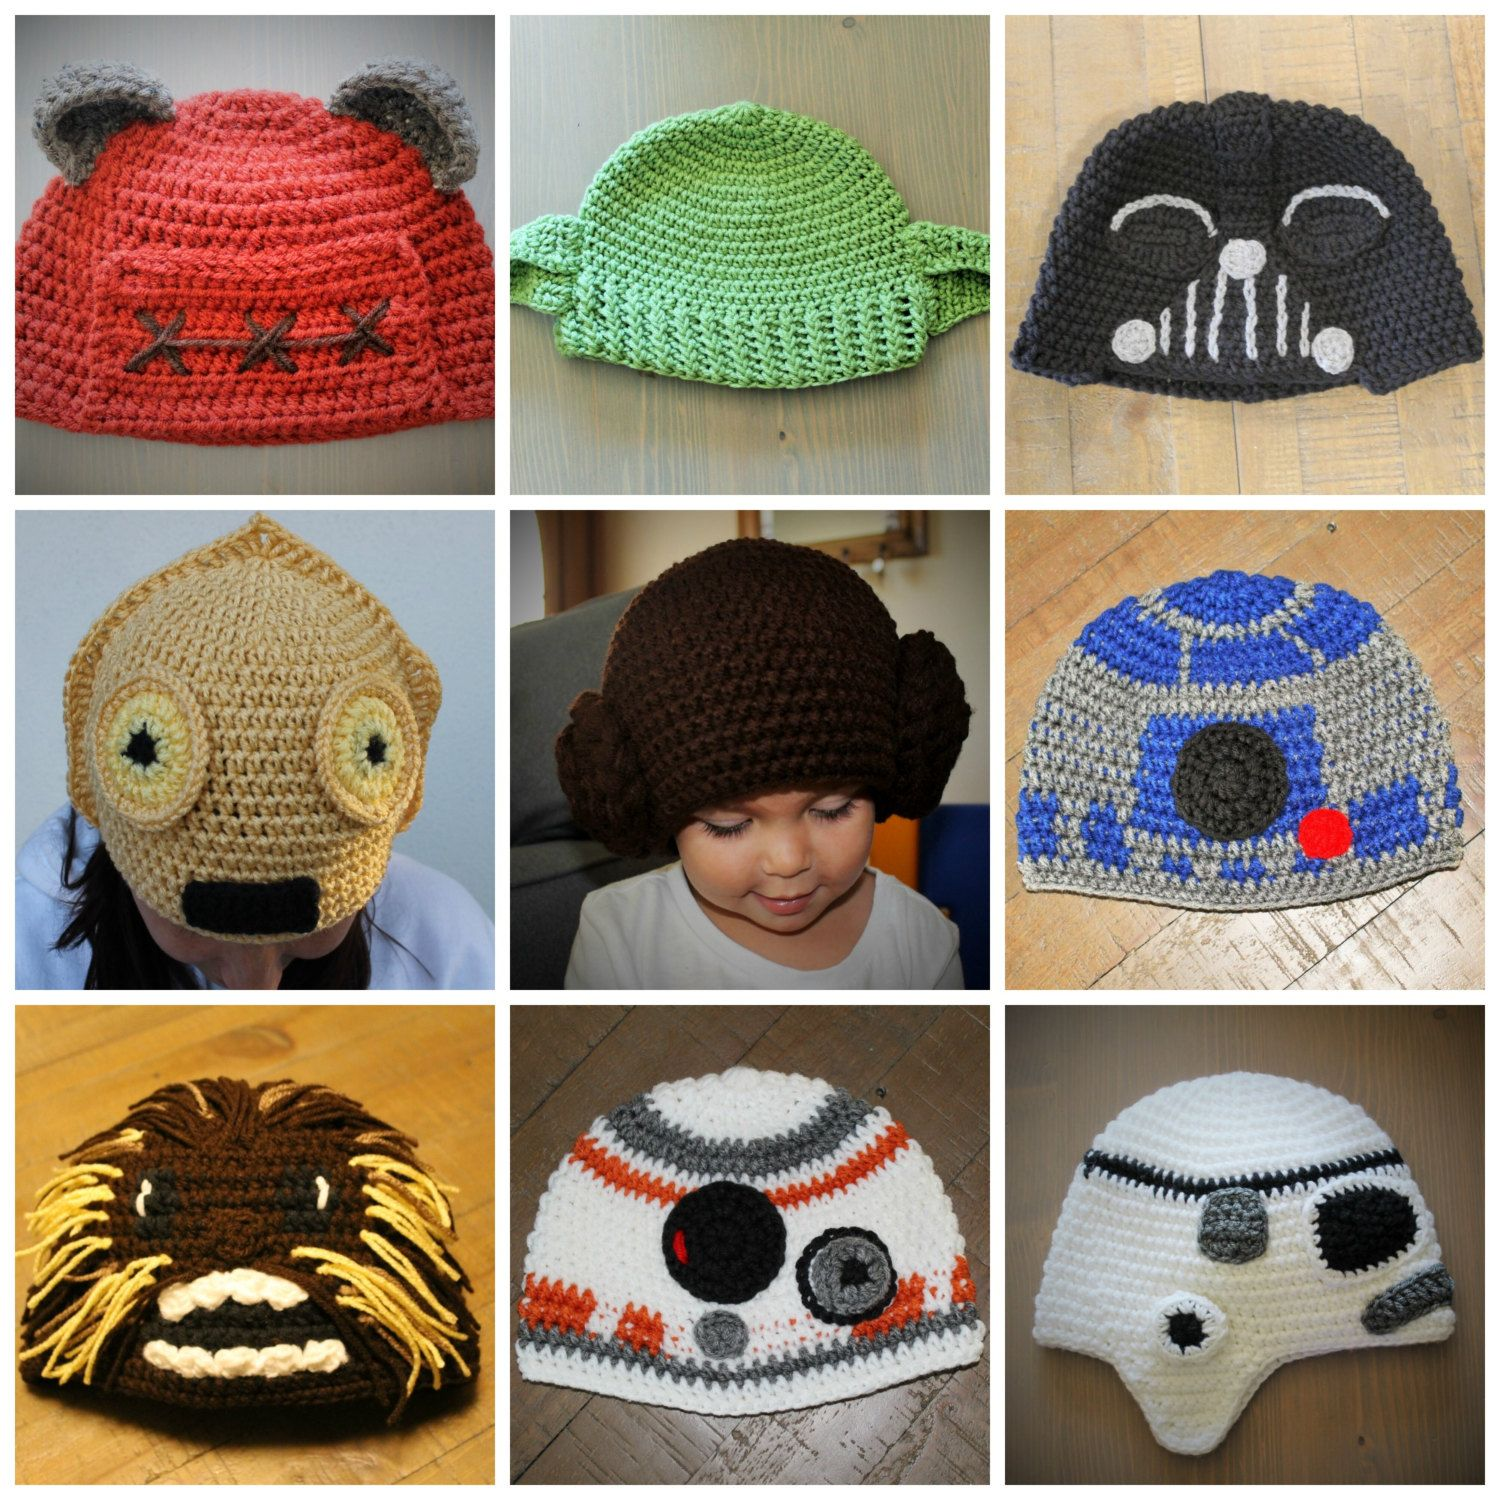 Crochetbydana Star Wars Crochet Crochet Hats Crochet Hat Pattern